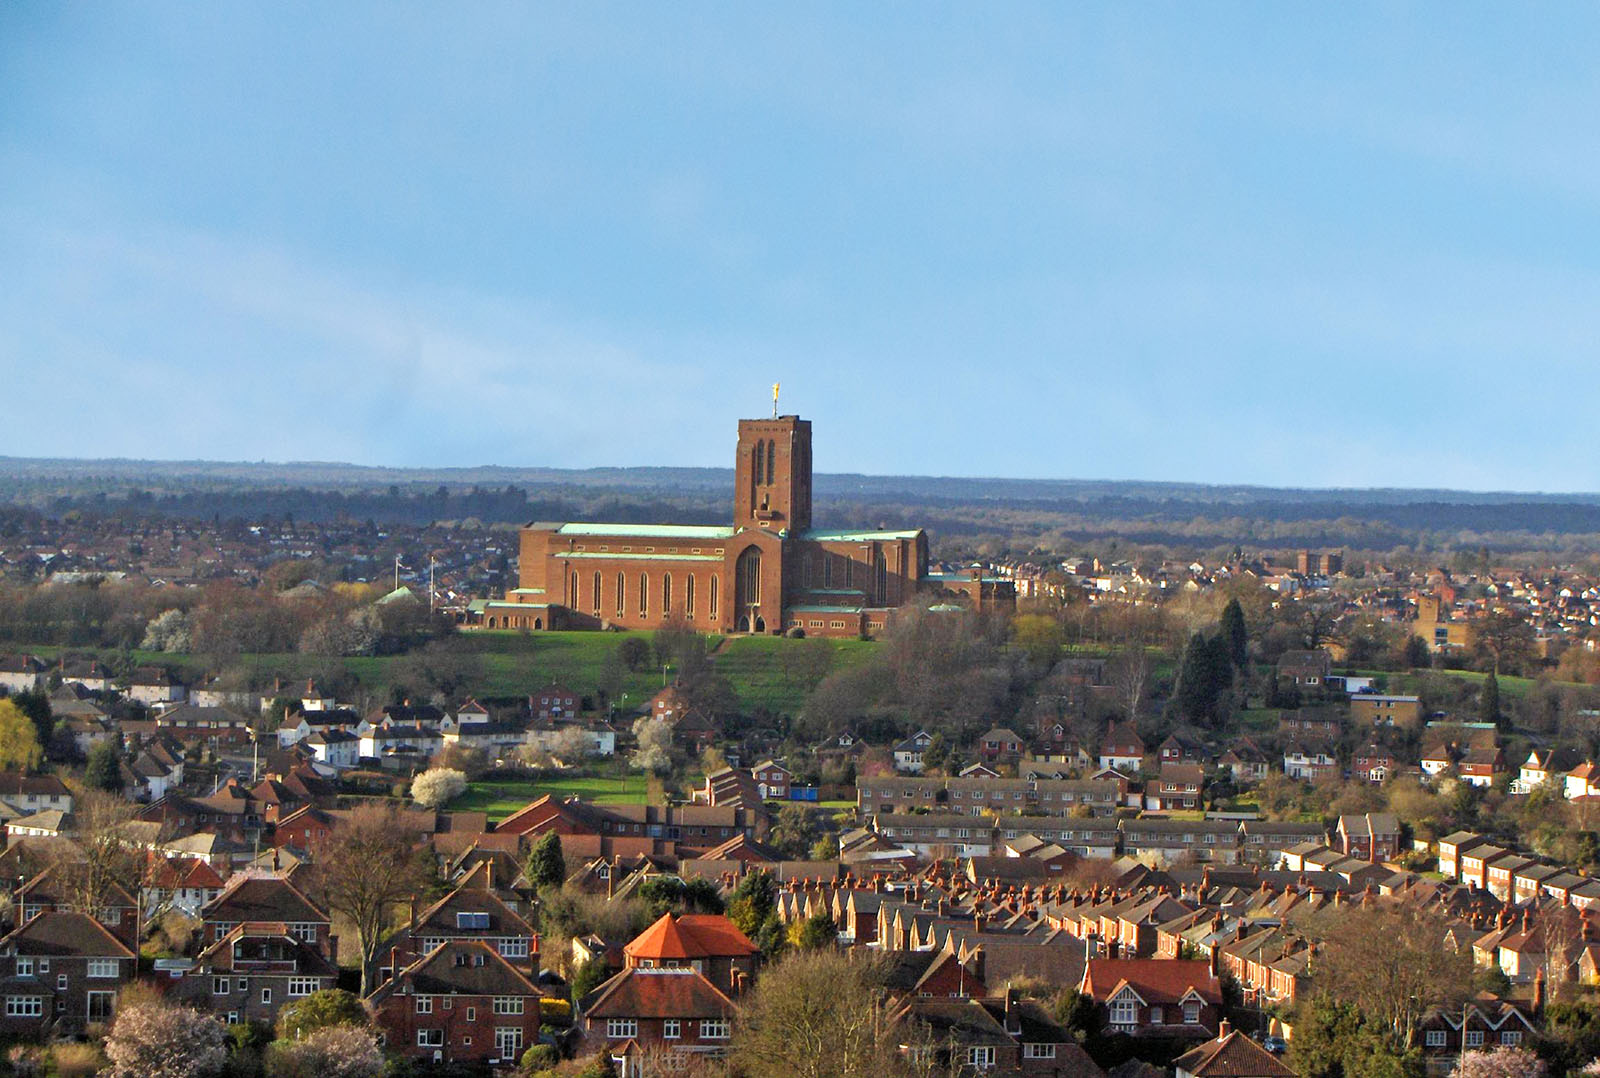 Guildford Cathedral and it's surroundings shot from a height.